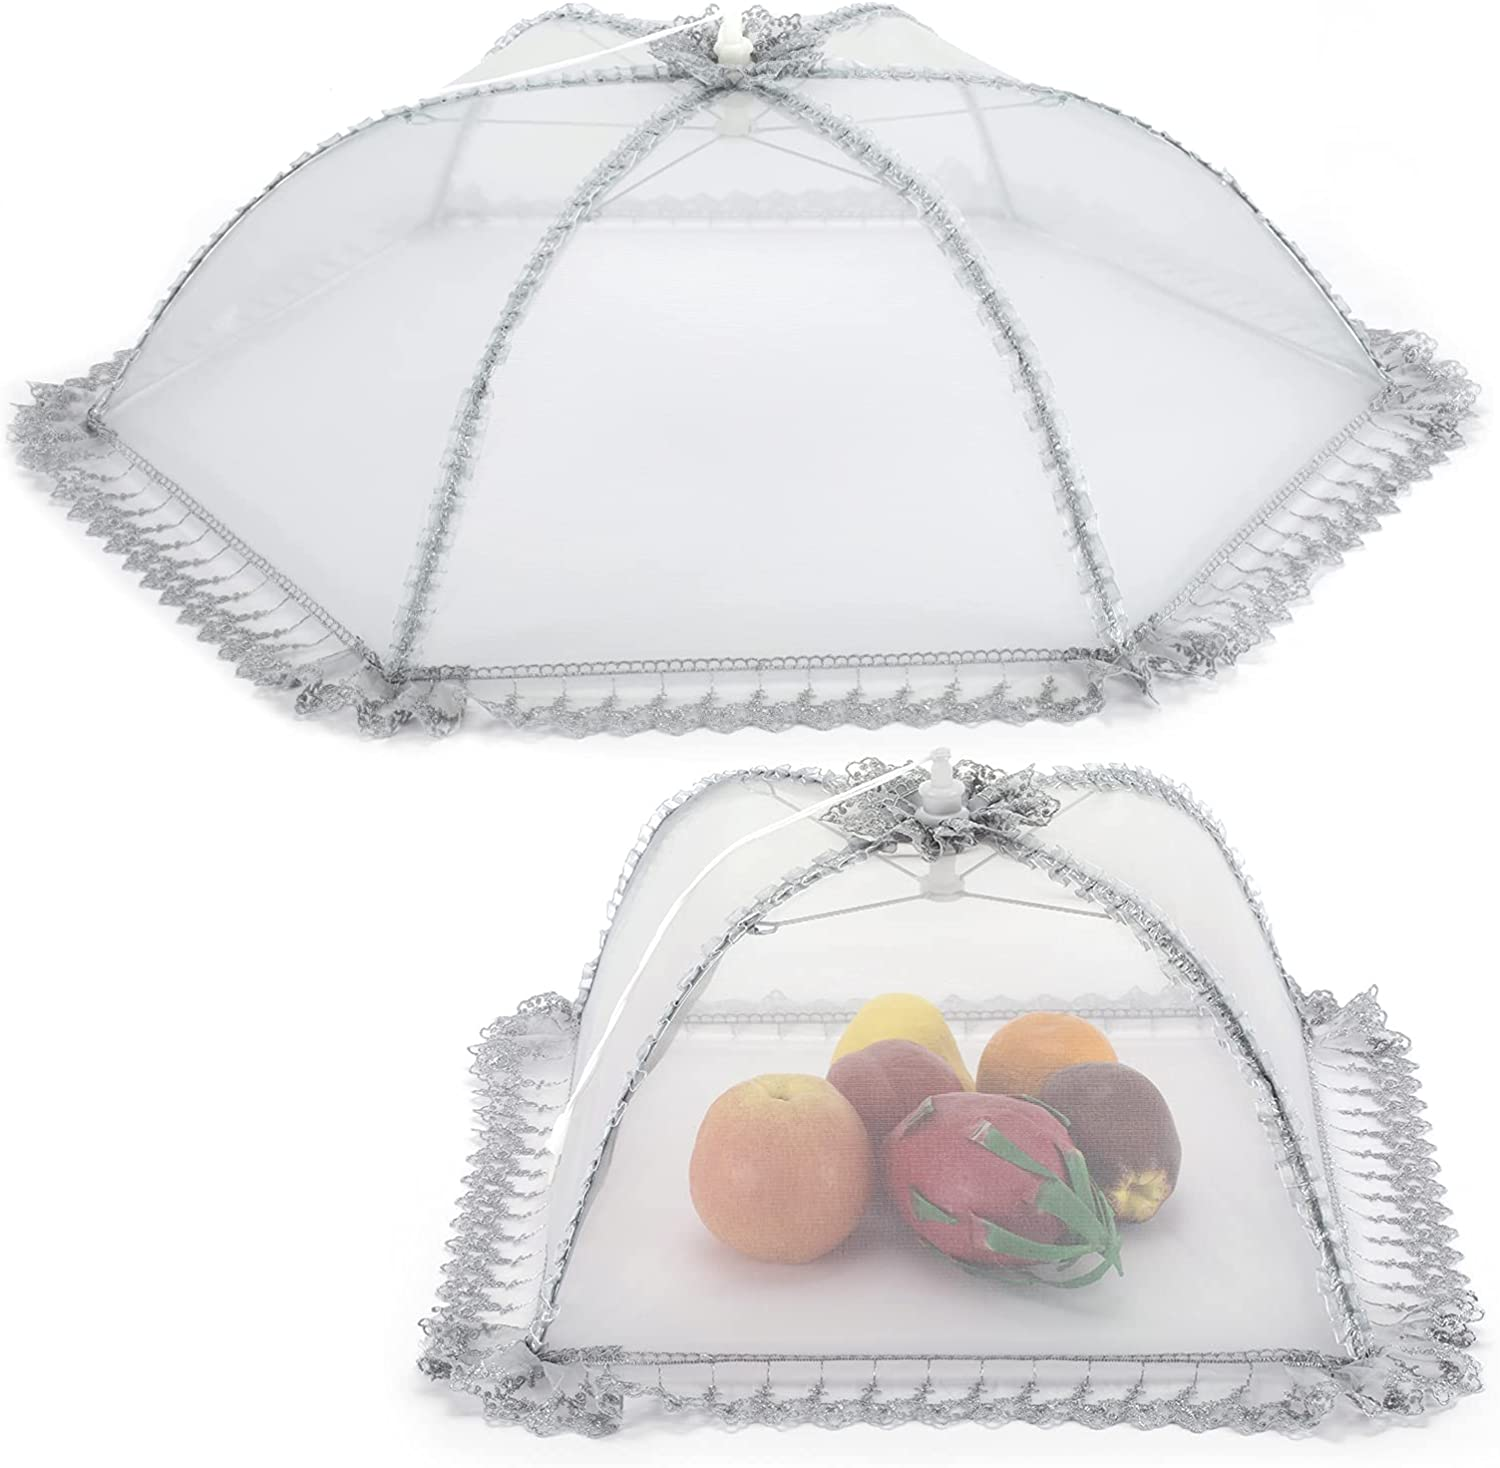 Food covers for Outdoor Large Mesh Screen,Food Tents for Camping and Picnic,Pop Up Mesh Cover Net for Protecting Food Cover Net